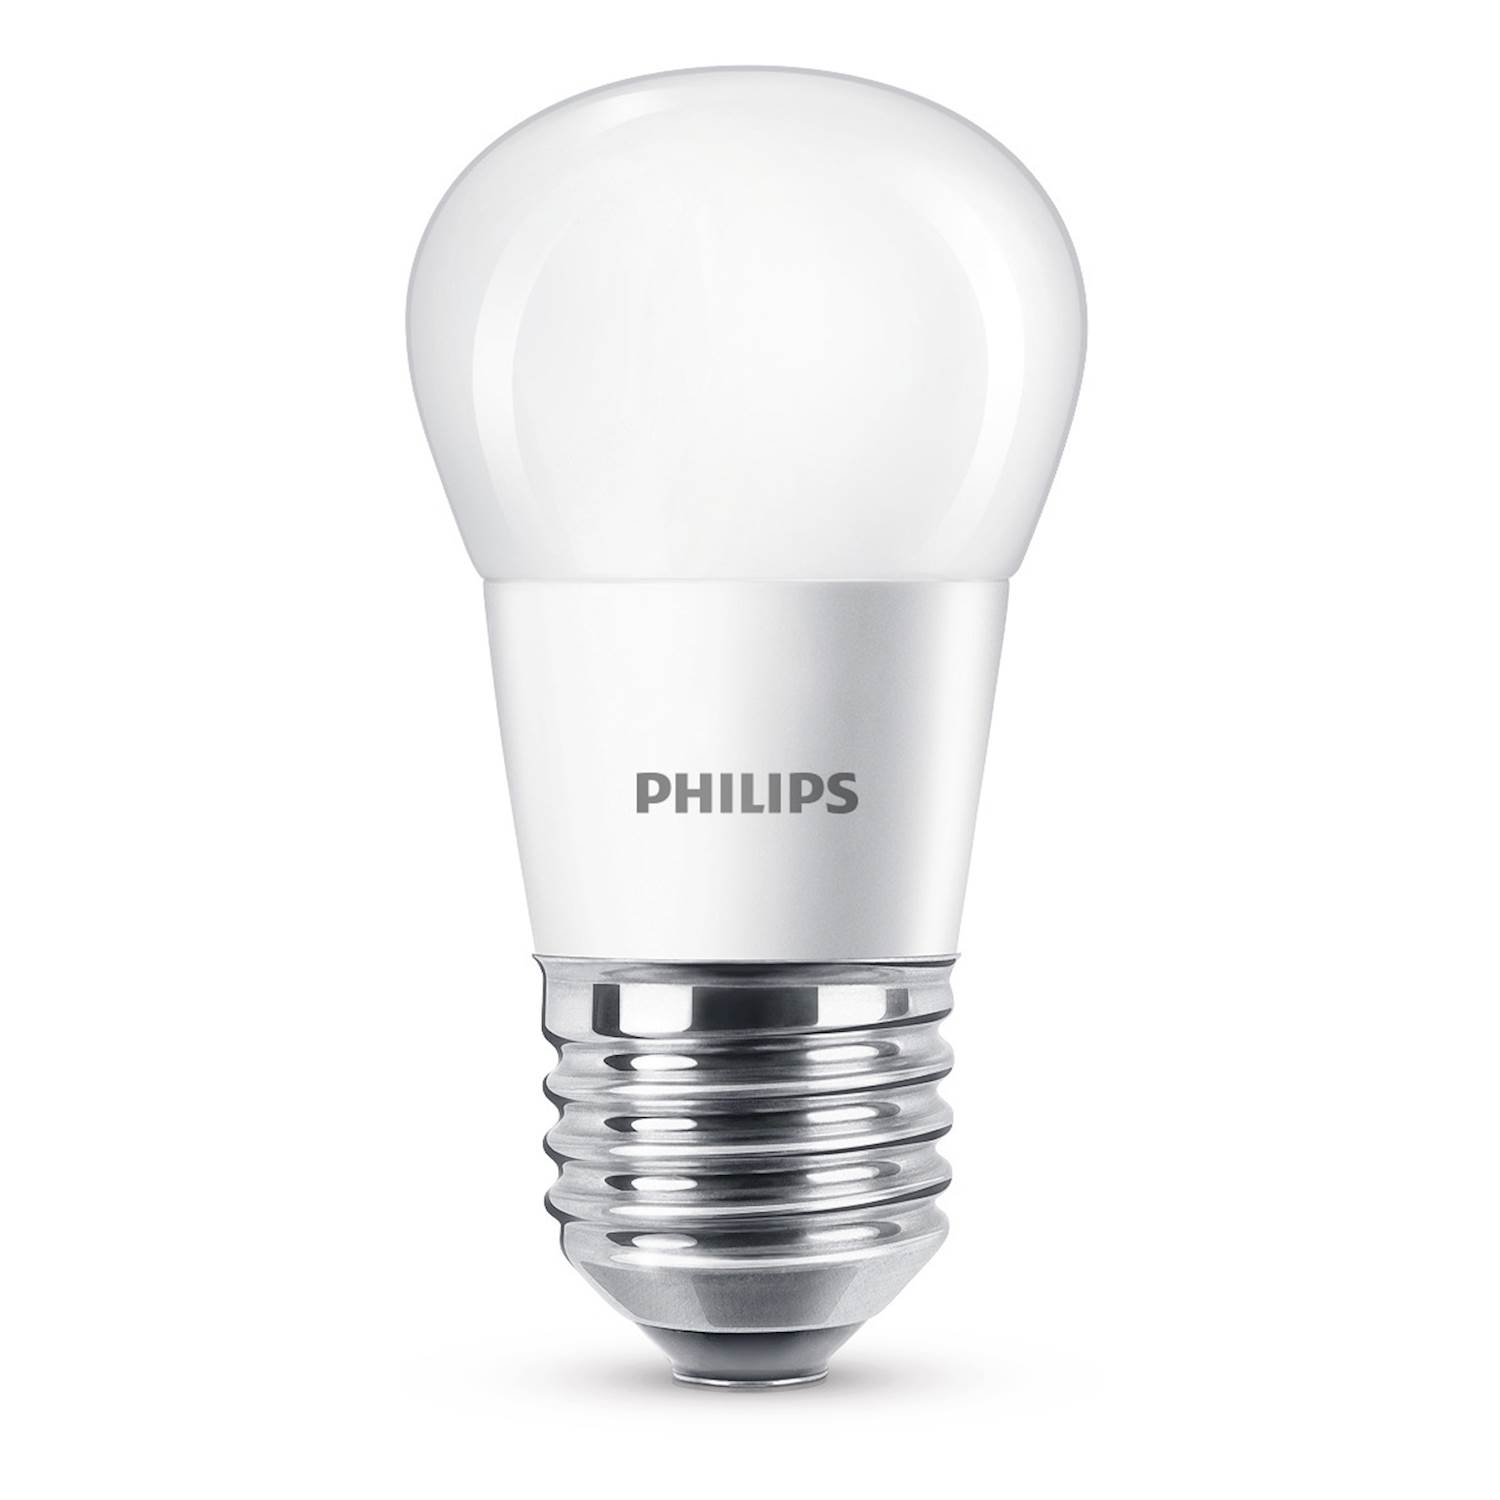 Philips LED KLOT 4W E27 VV FR ND